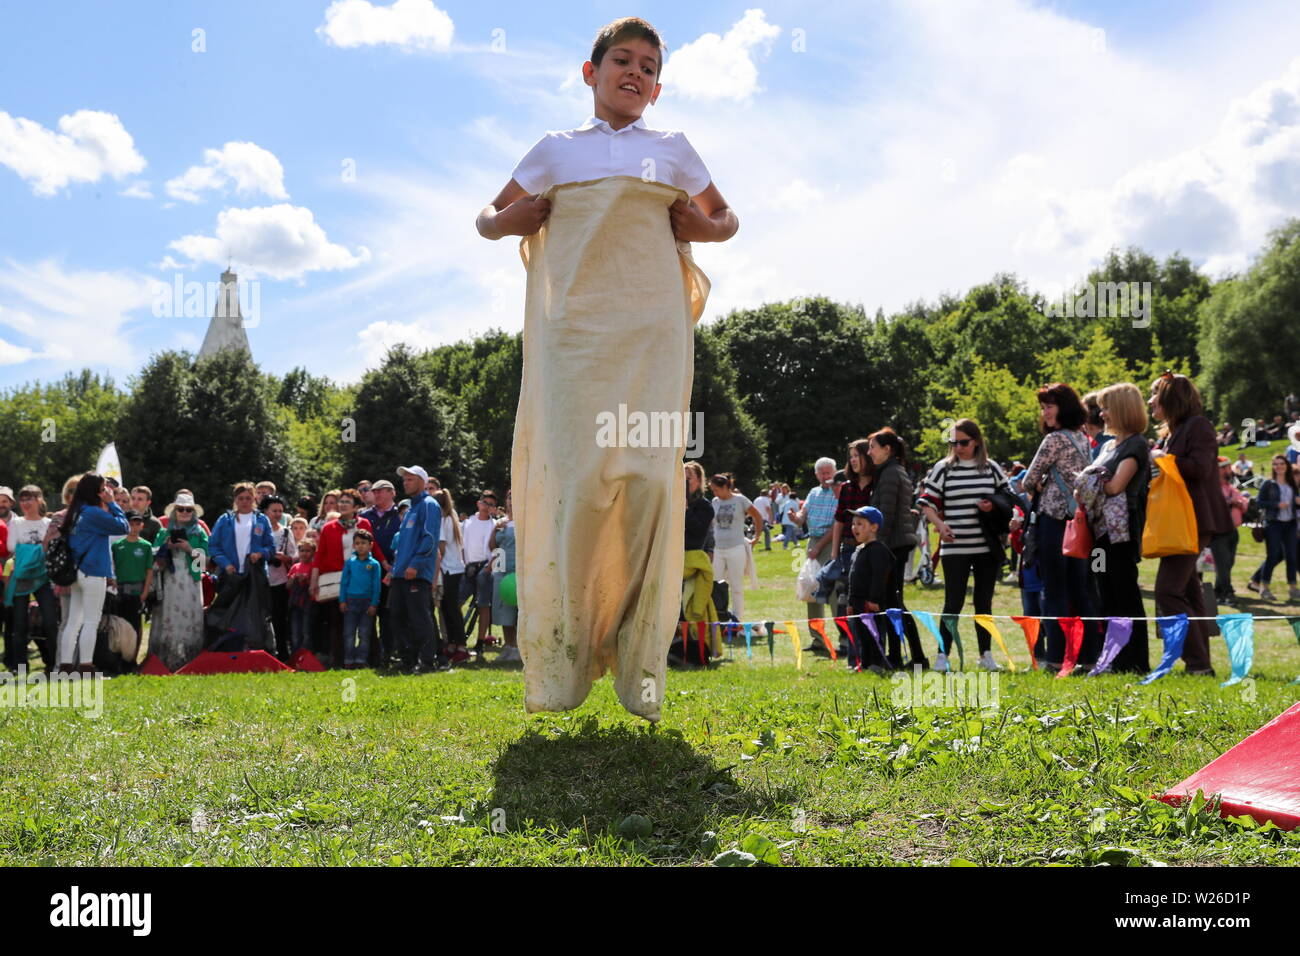 Moscow, Russia. 06th July, 2019. MOSCOW, RUSSIA - JULY 6, 2019: Teenagers compete in a sack race at Sabantui (a traditional summer festival celebrated primarily by the Tatars and the Bashkirs) in Kolomenskoye Park. Sergei Savostyanov/TASS Credit: ITAR-TASS News Agency/Alamy Live News - Stock Image